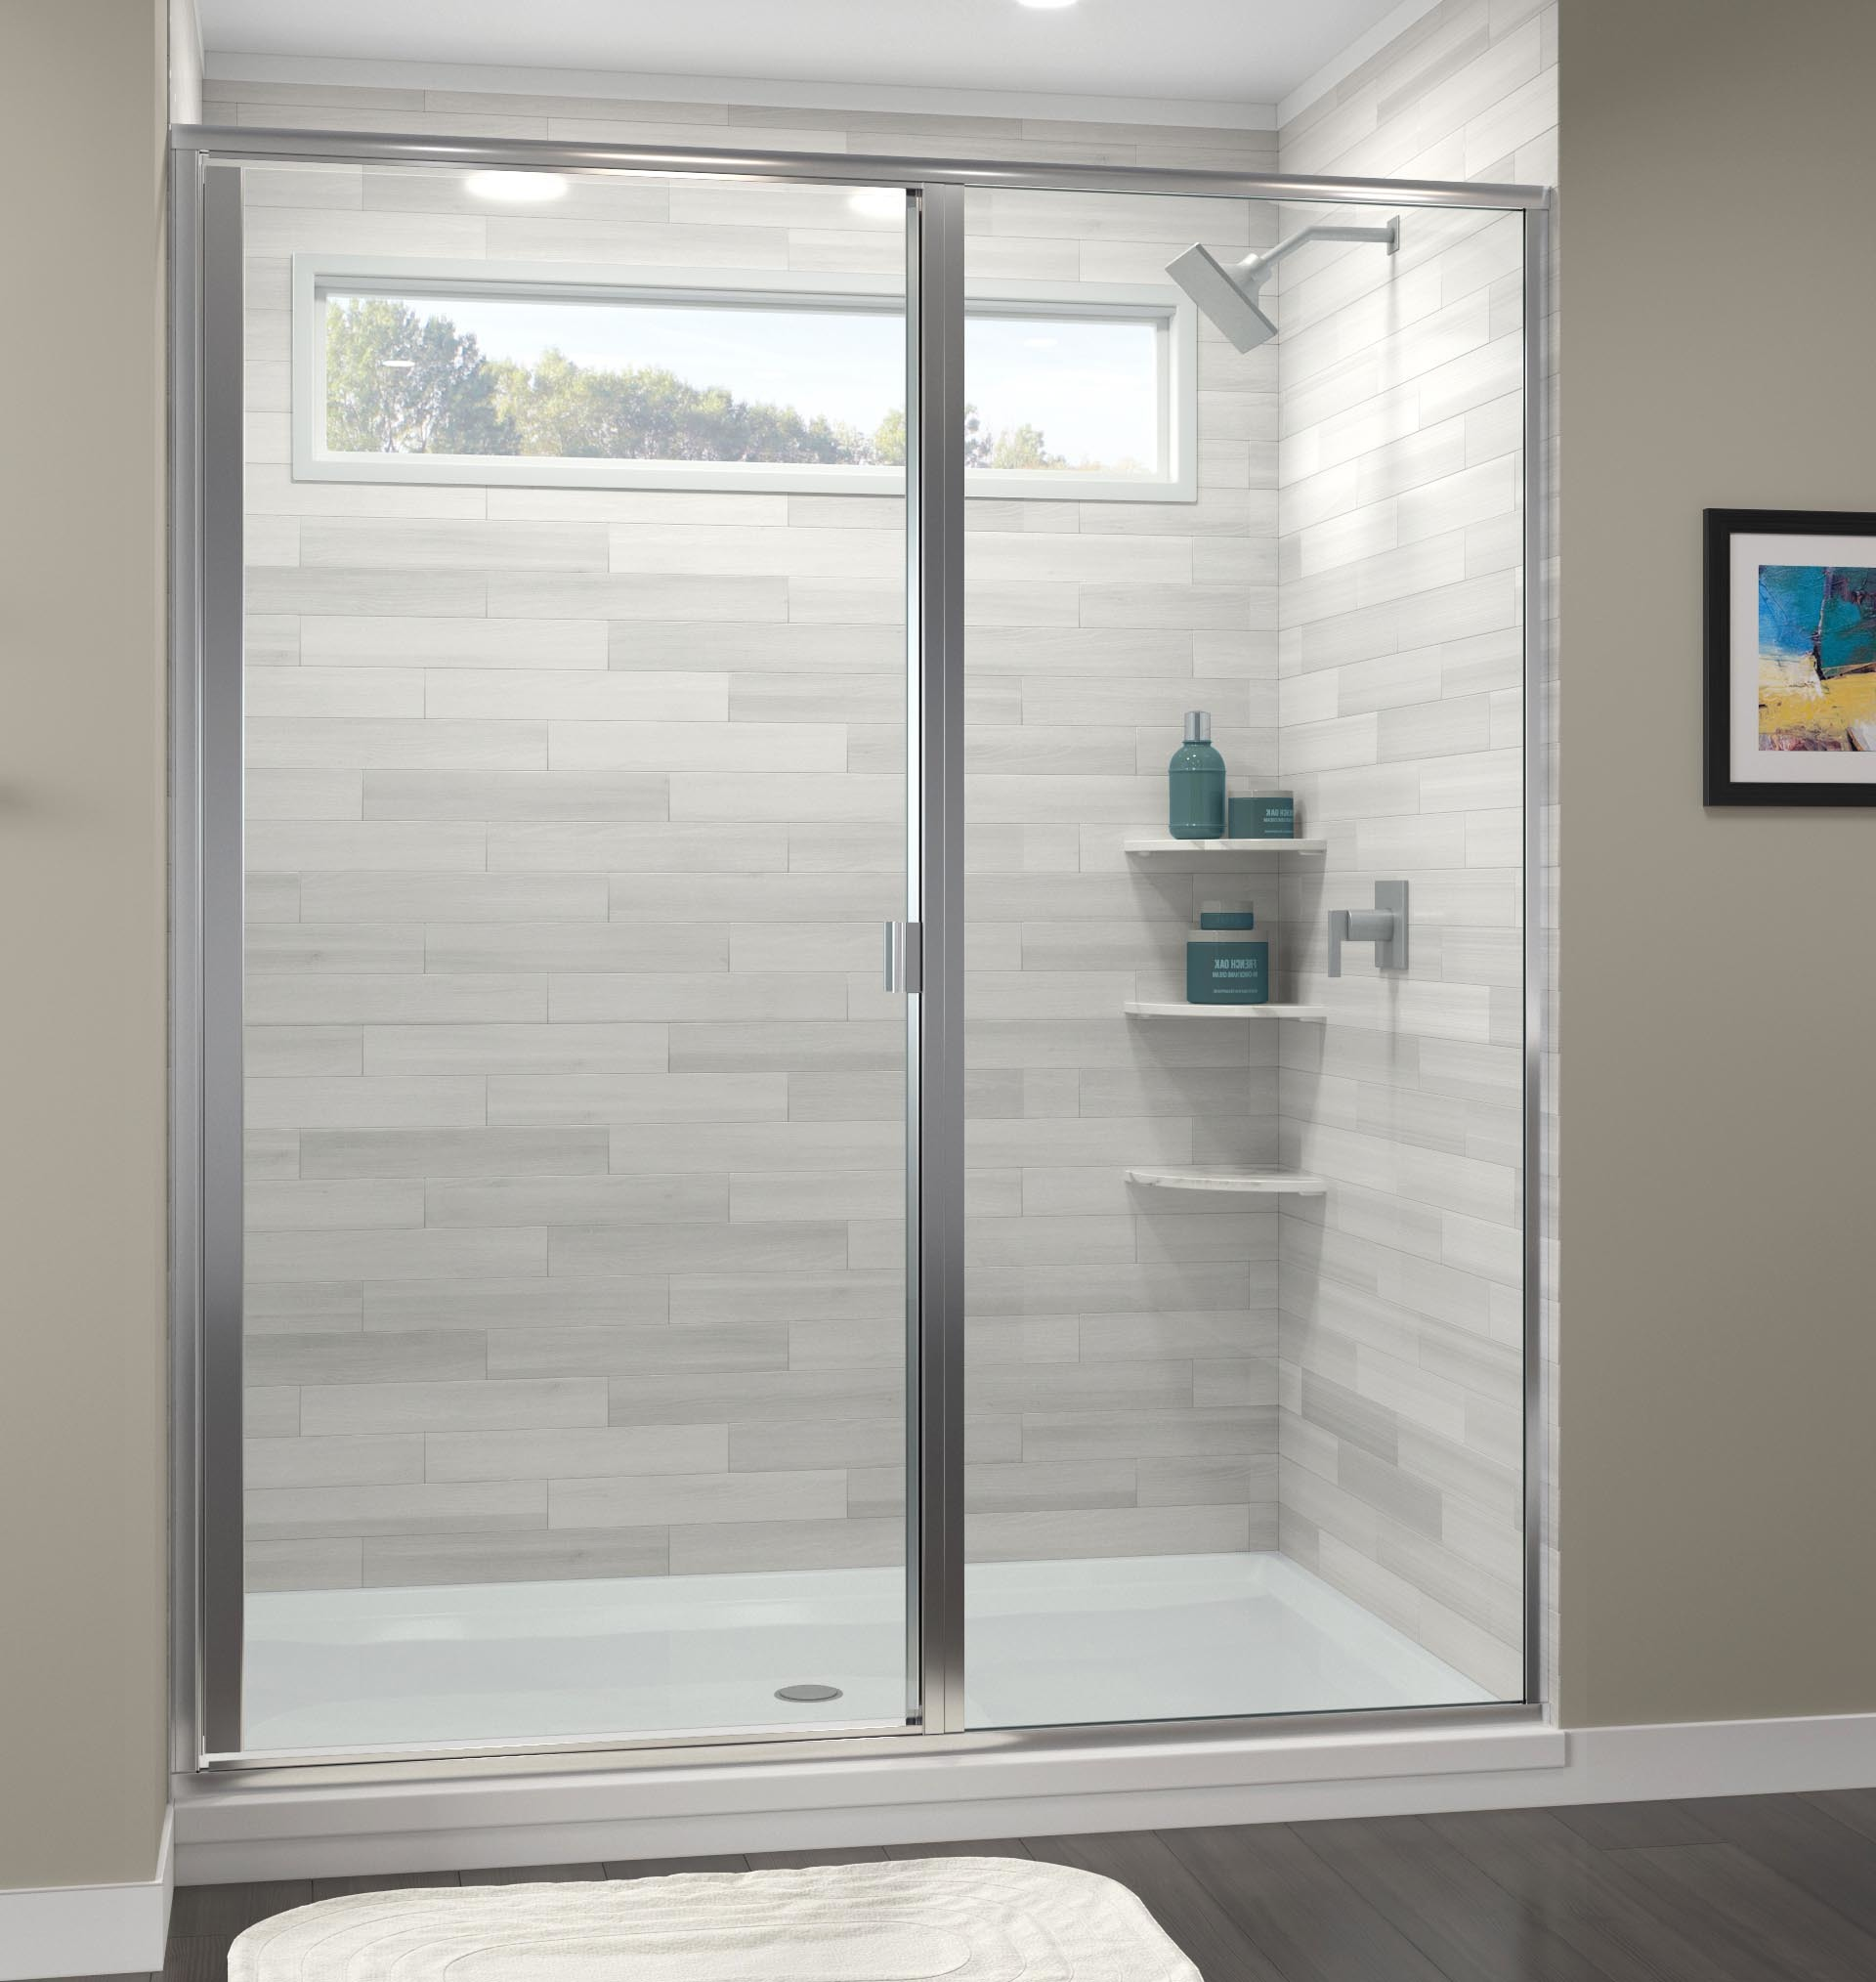 Classic Semi Frameless 316 Inch Glass Swing Door Basco Shower Doors